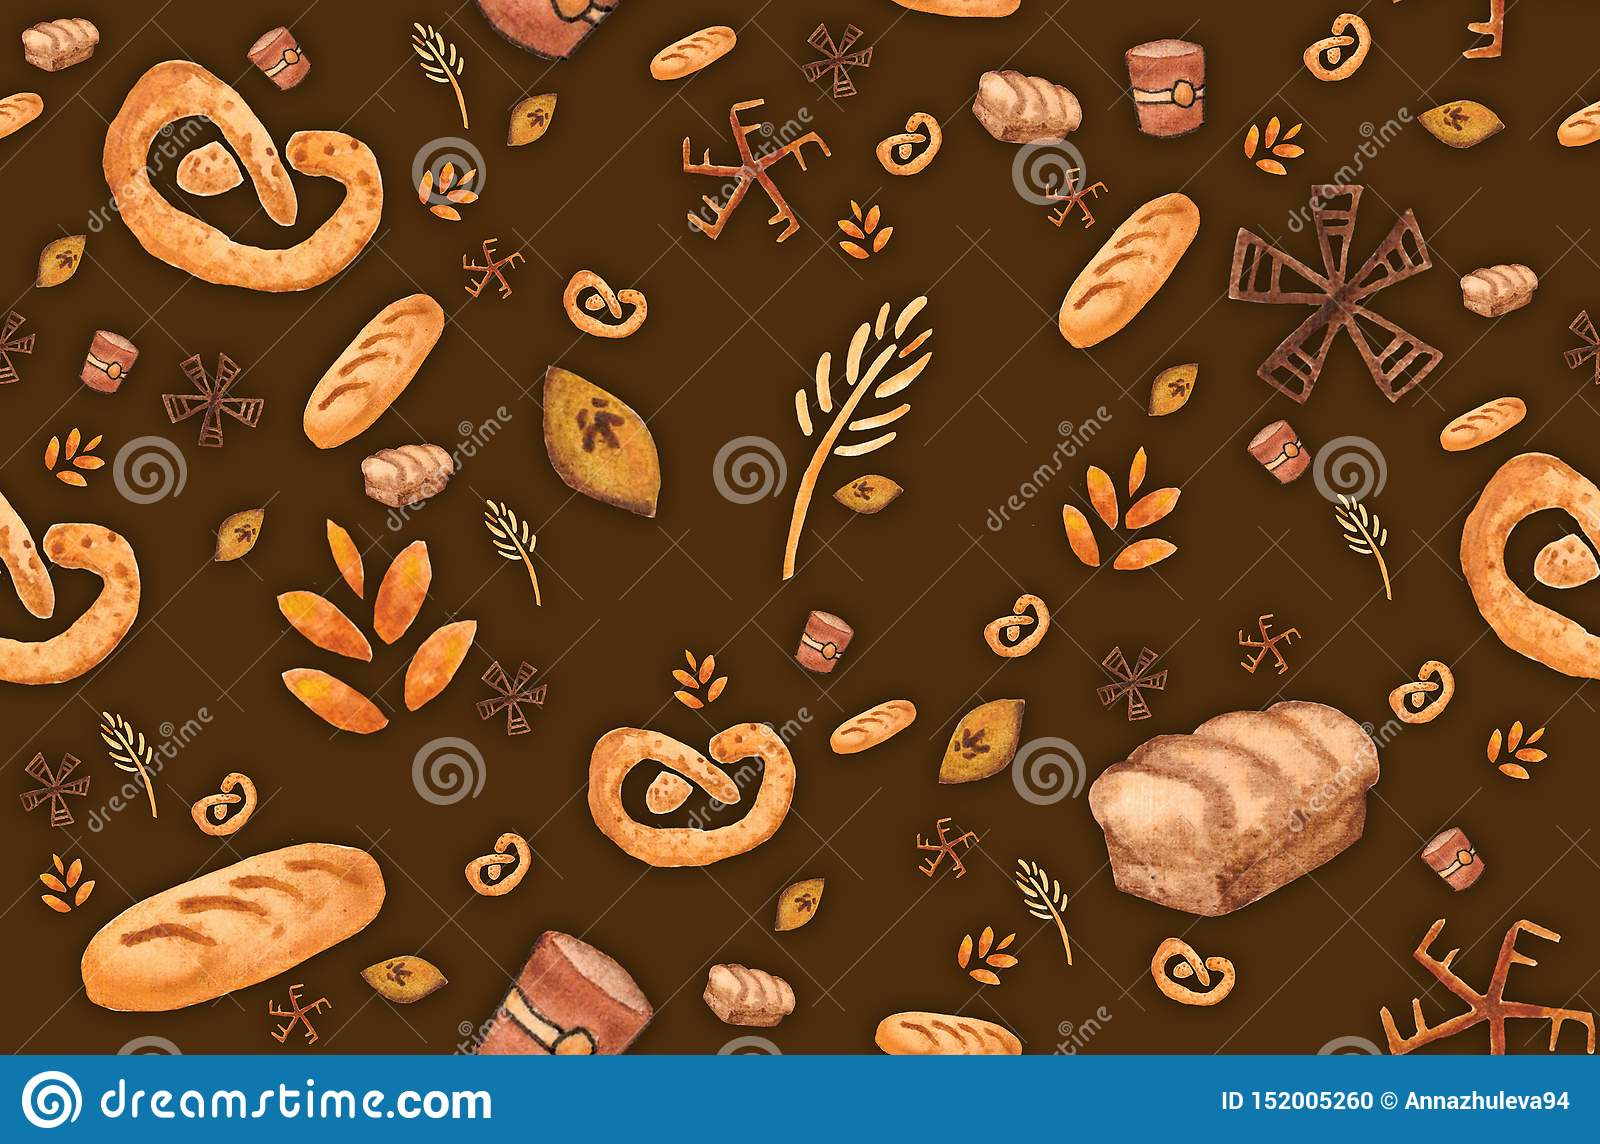 Bakery products, baking print. Pastry seamless pattern. Cute kitchen background